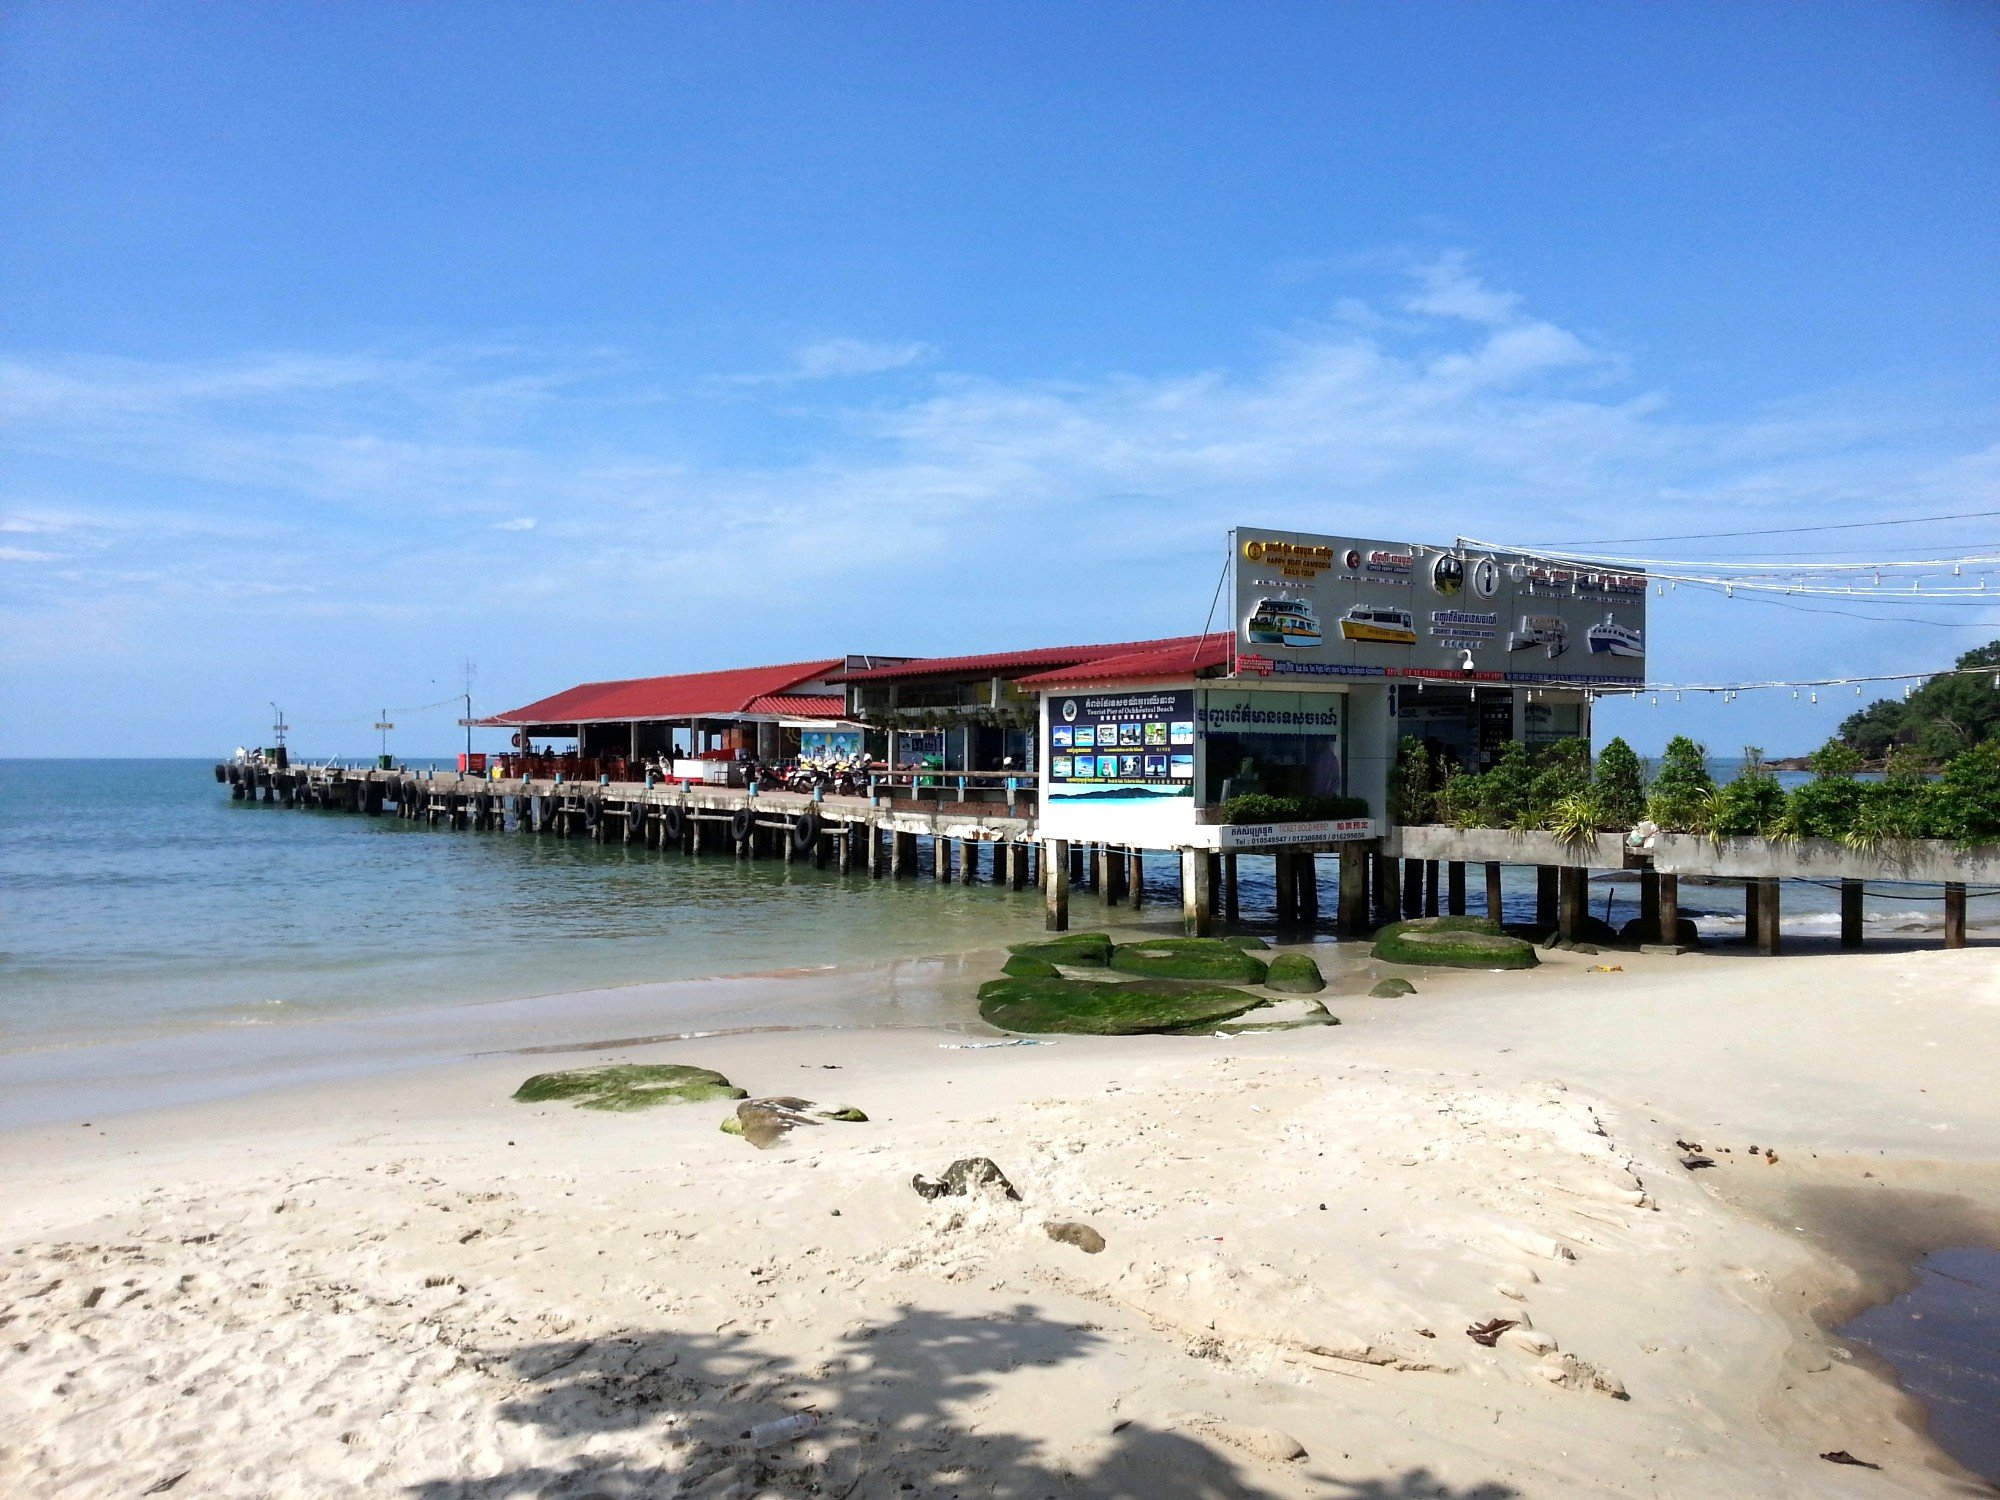 Ferry Pier in Sihanoukville